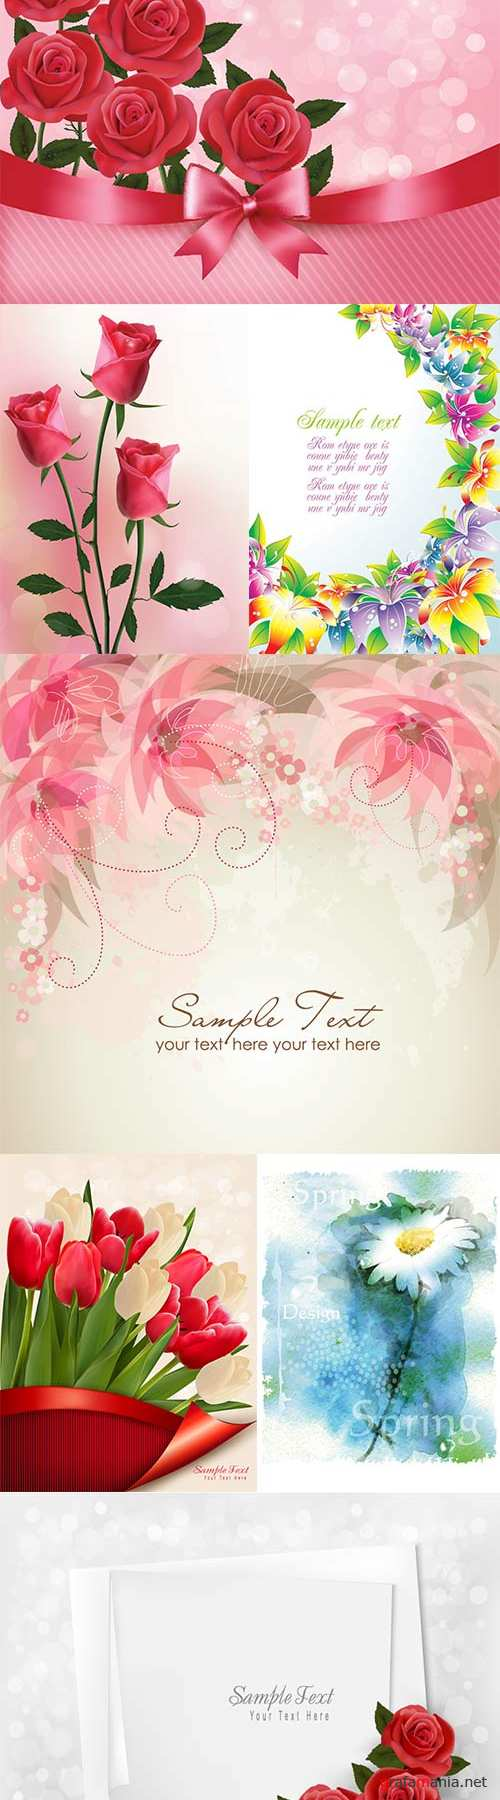 Awesome vector flowers-12